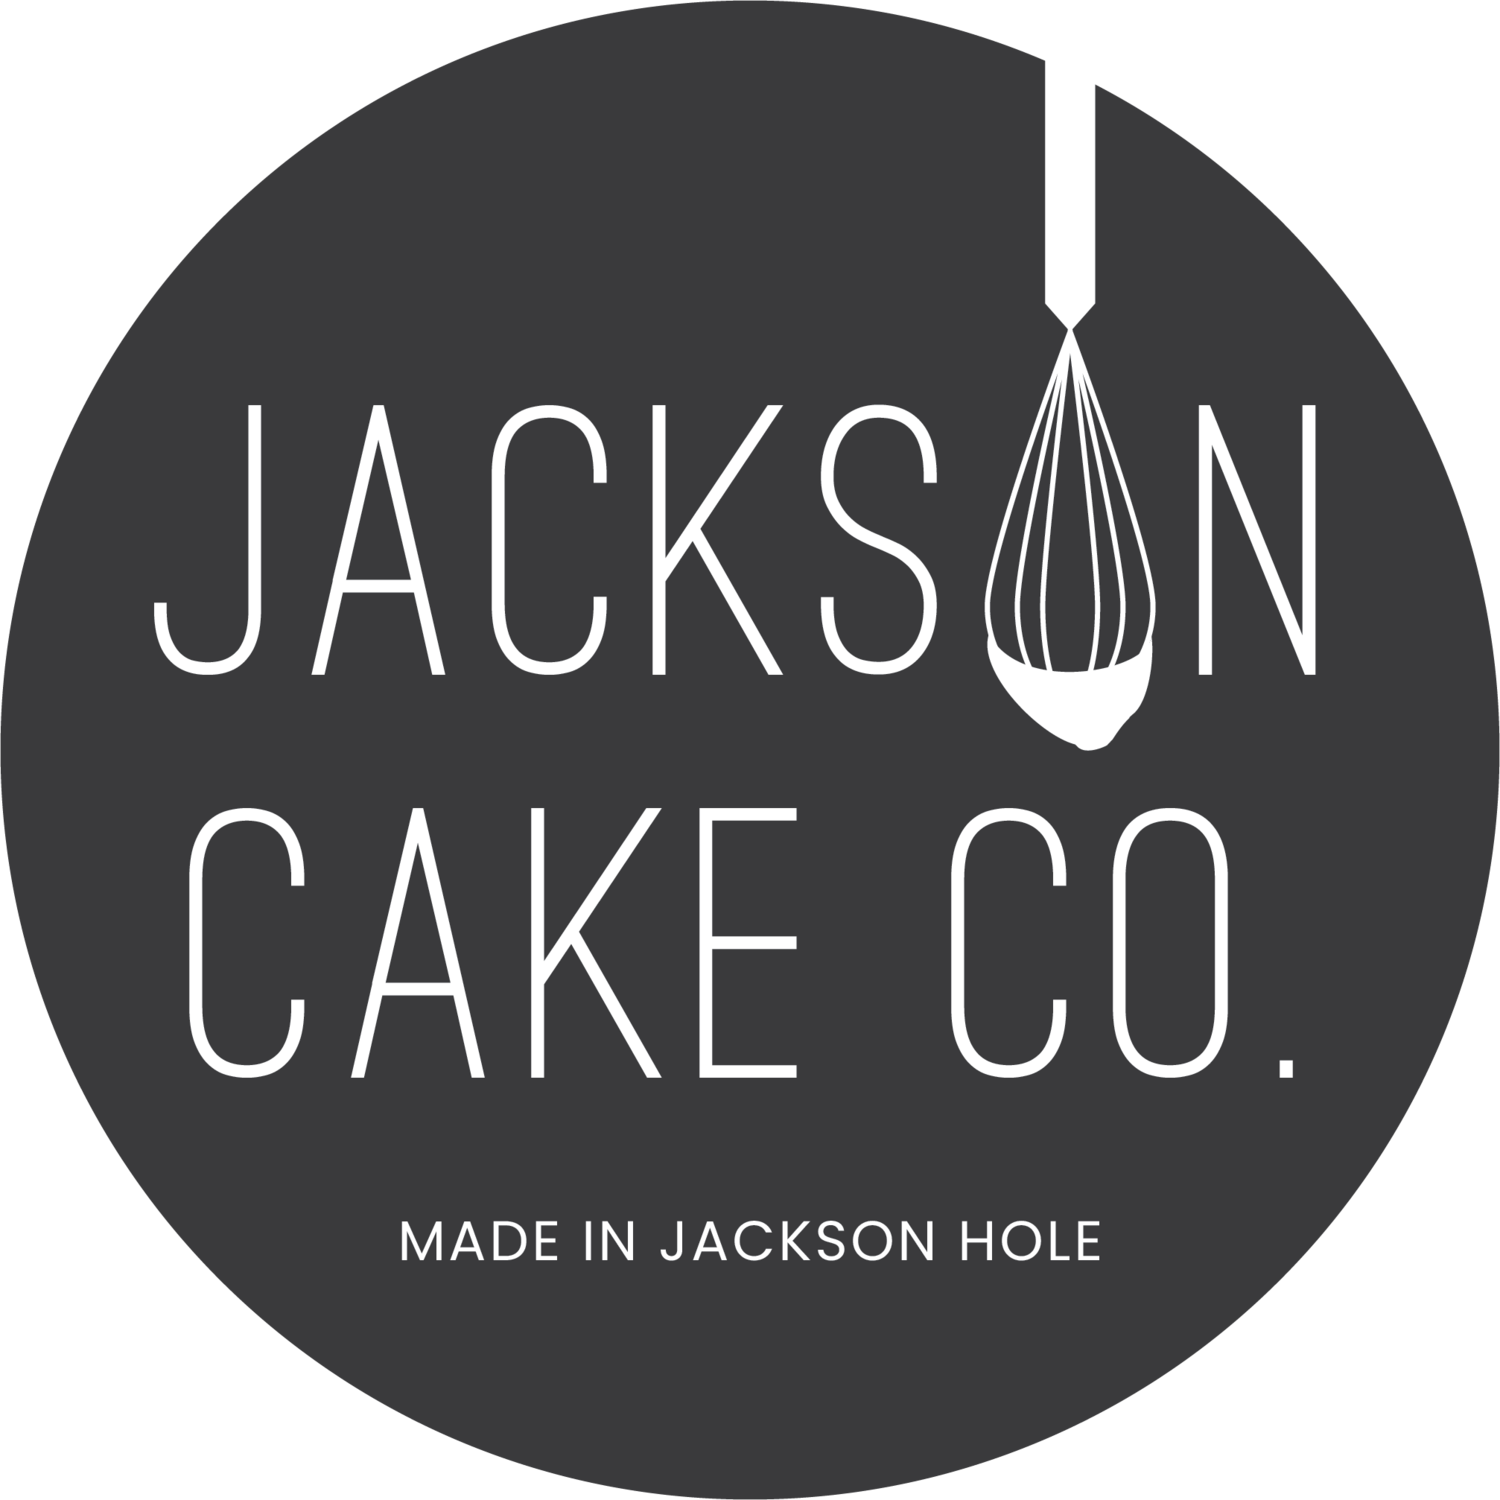 Jackson Cake Co. | Jackson Hole, Wyoming Wedding Cakes and Desserts